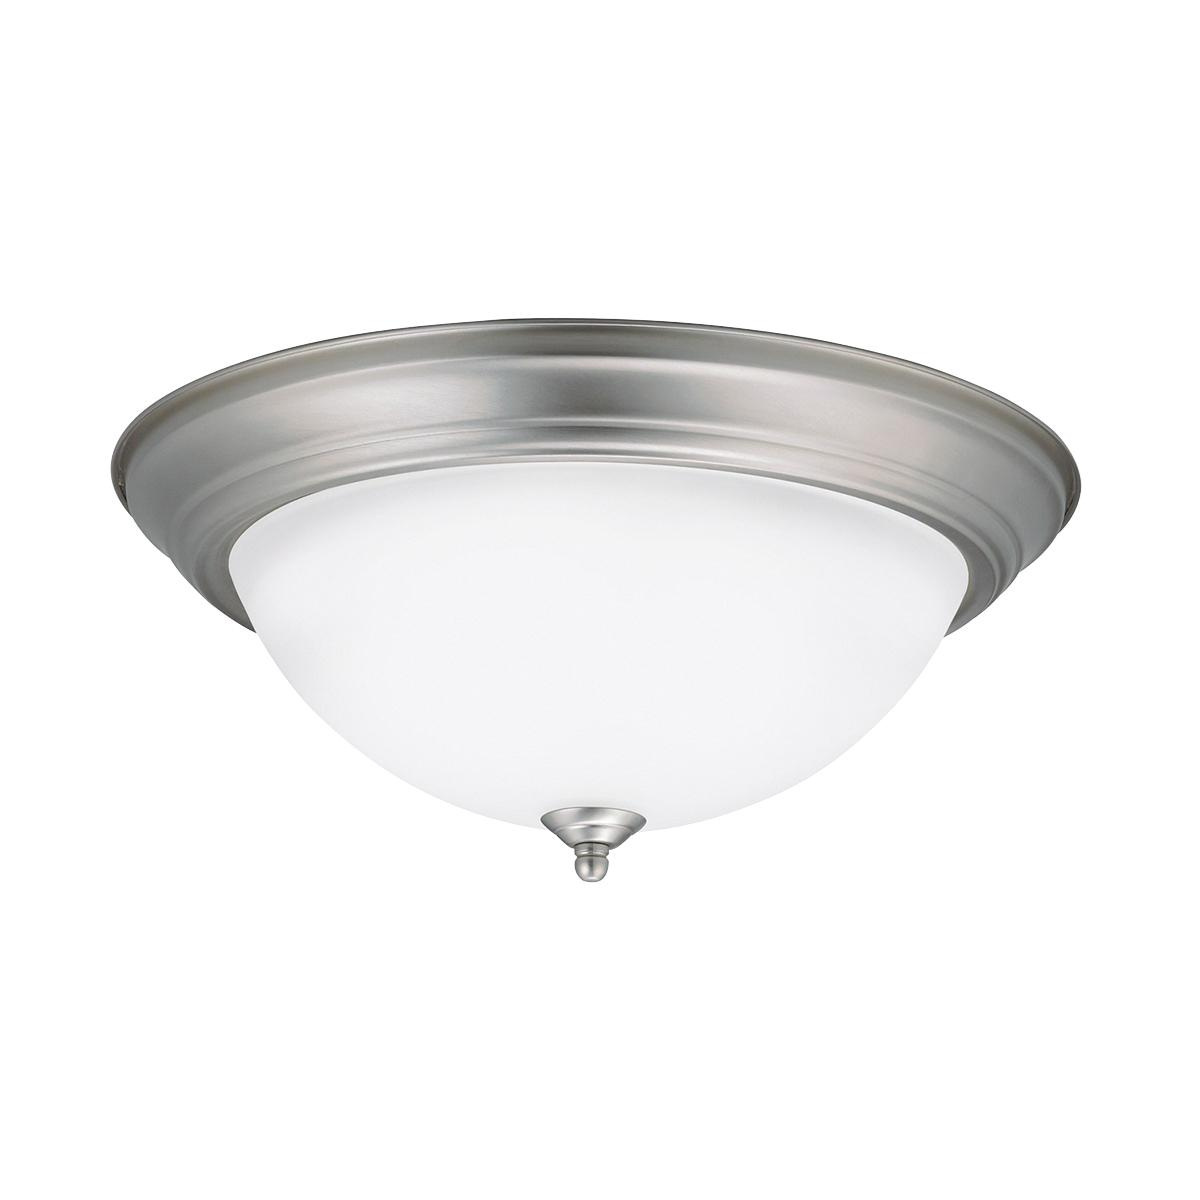 Kichler 8116NI 3-Light Flush Mount Ceiling Fixture 60 Watt 120 Volt ...